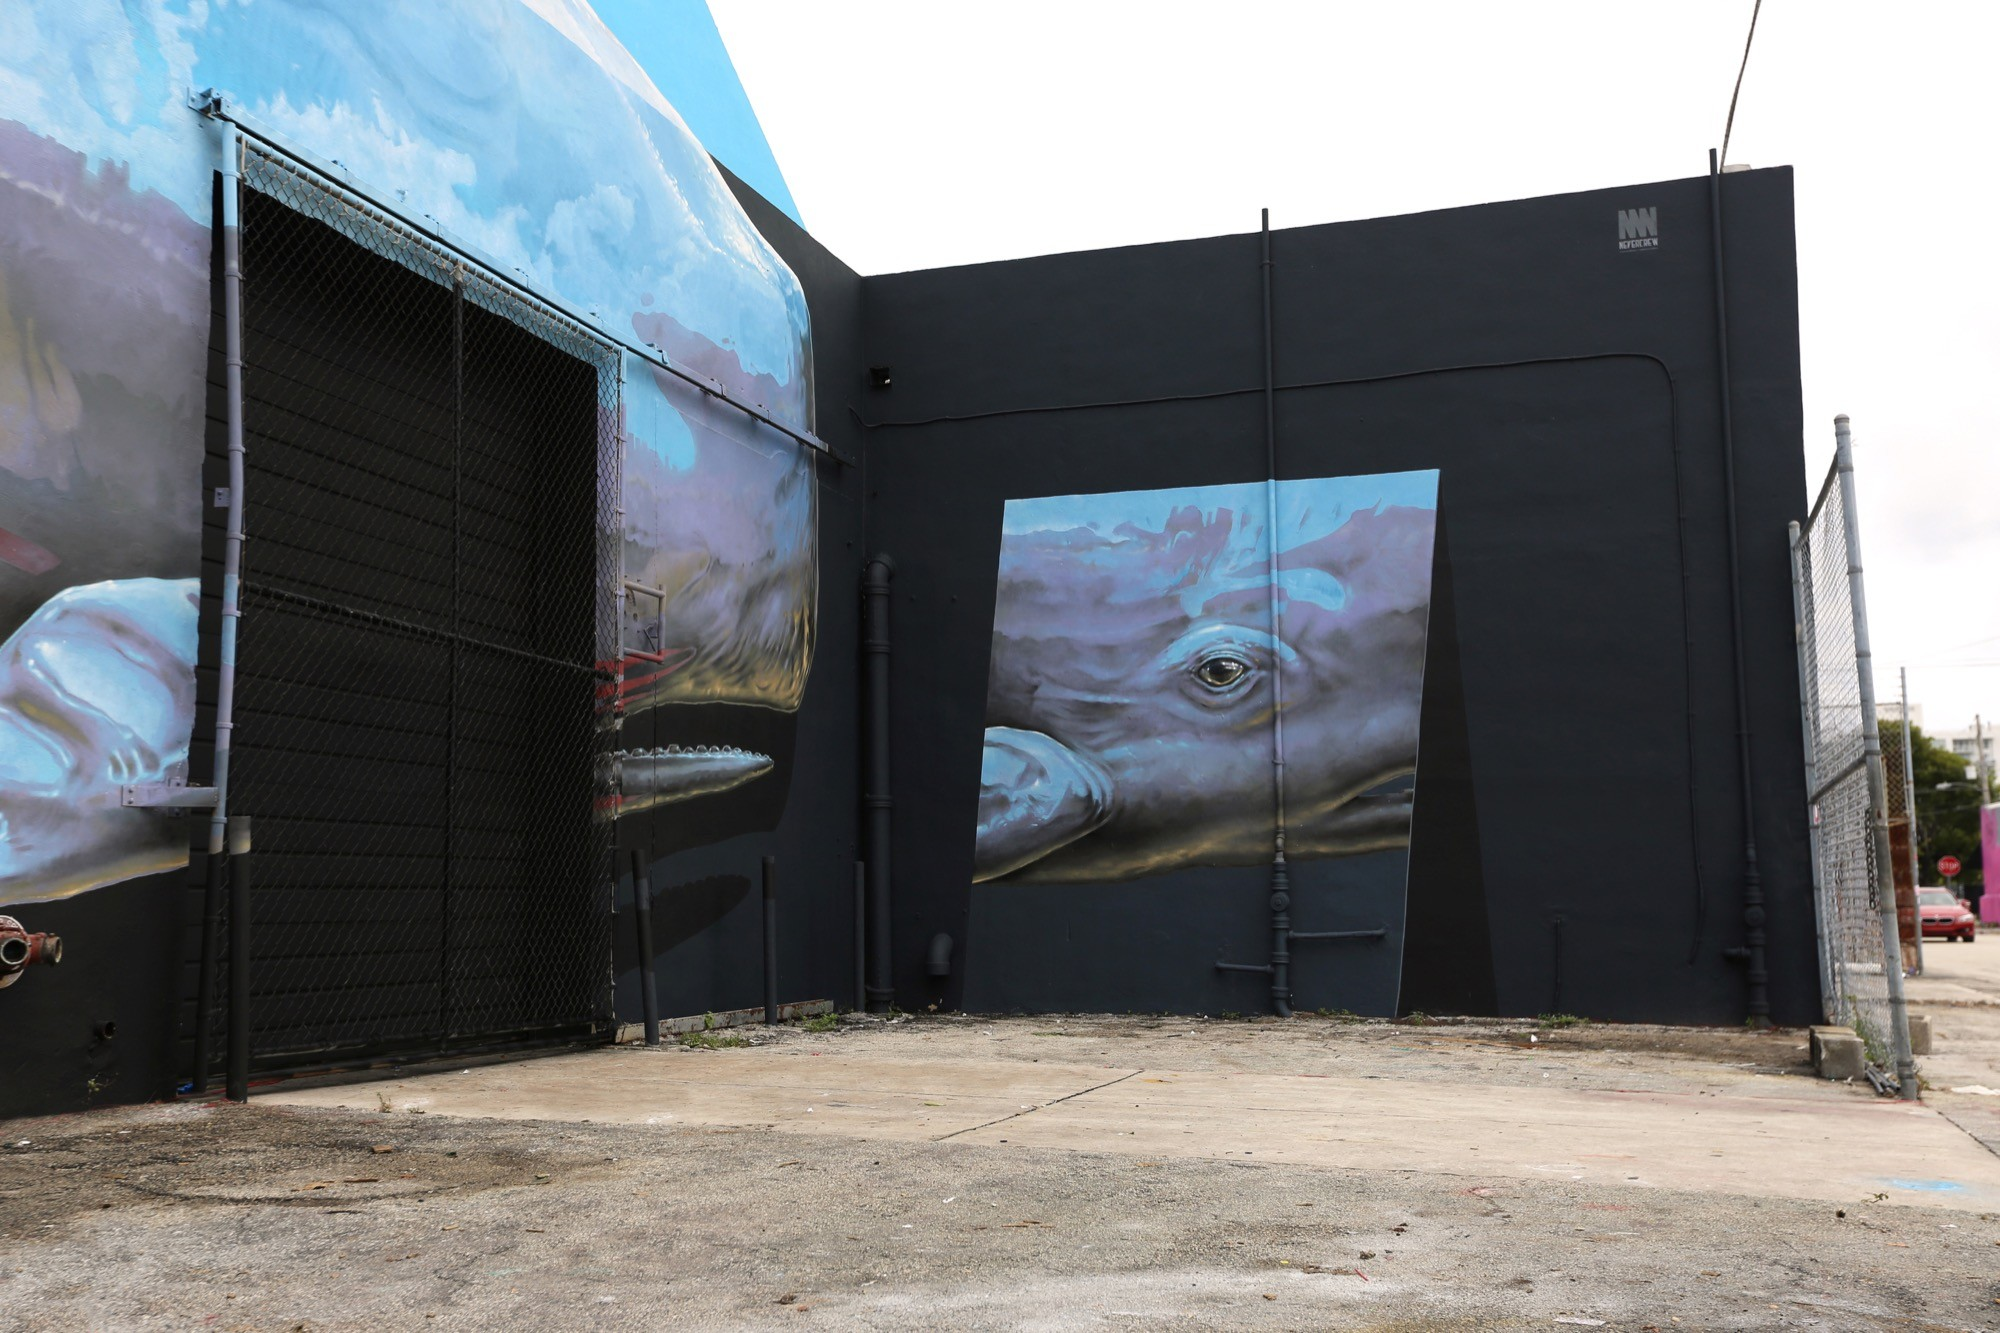 NEVERCREW - Ablating machine - Wynwood Miami 2015 - 02